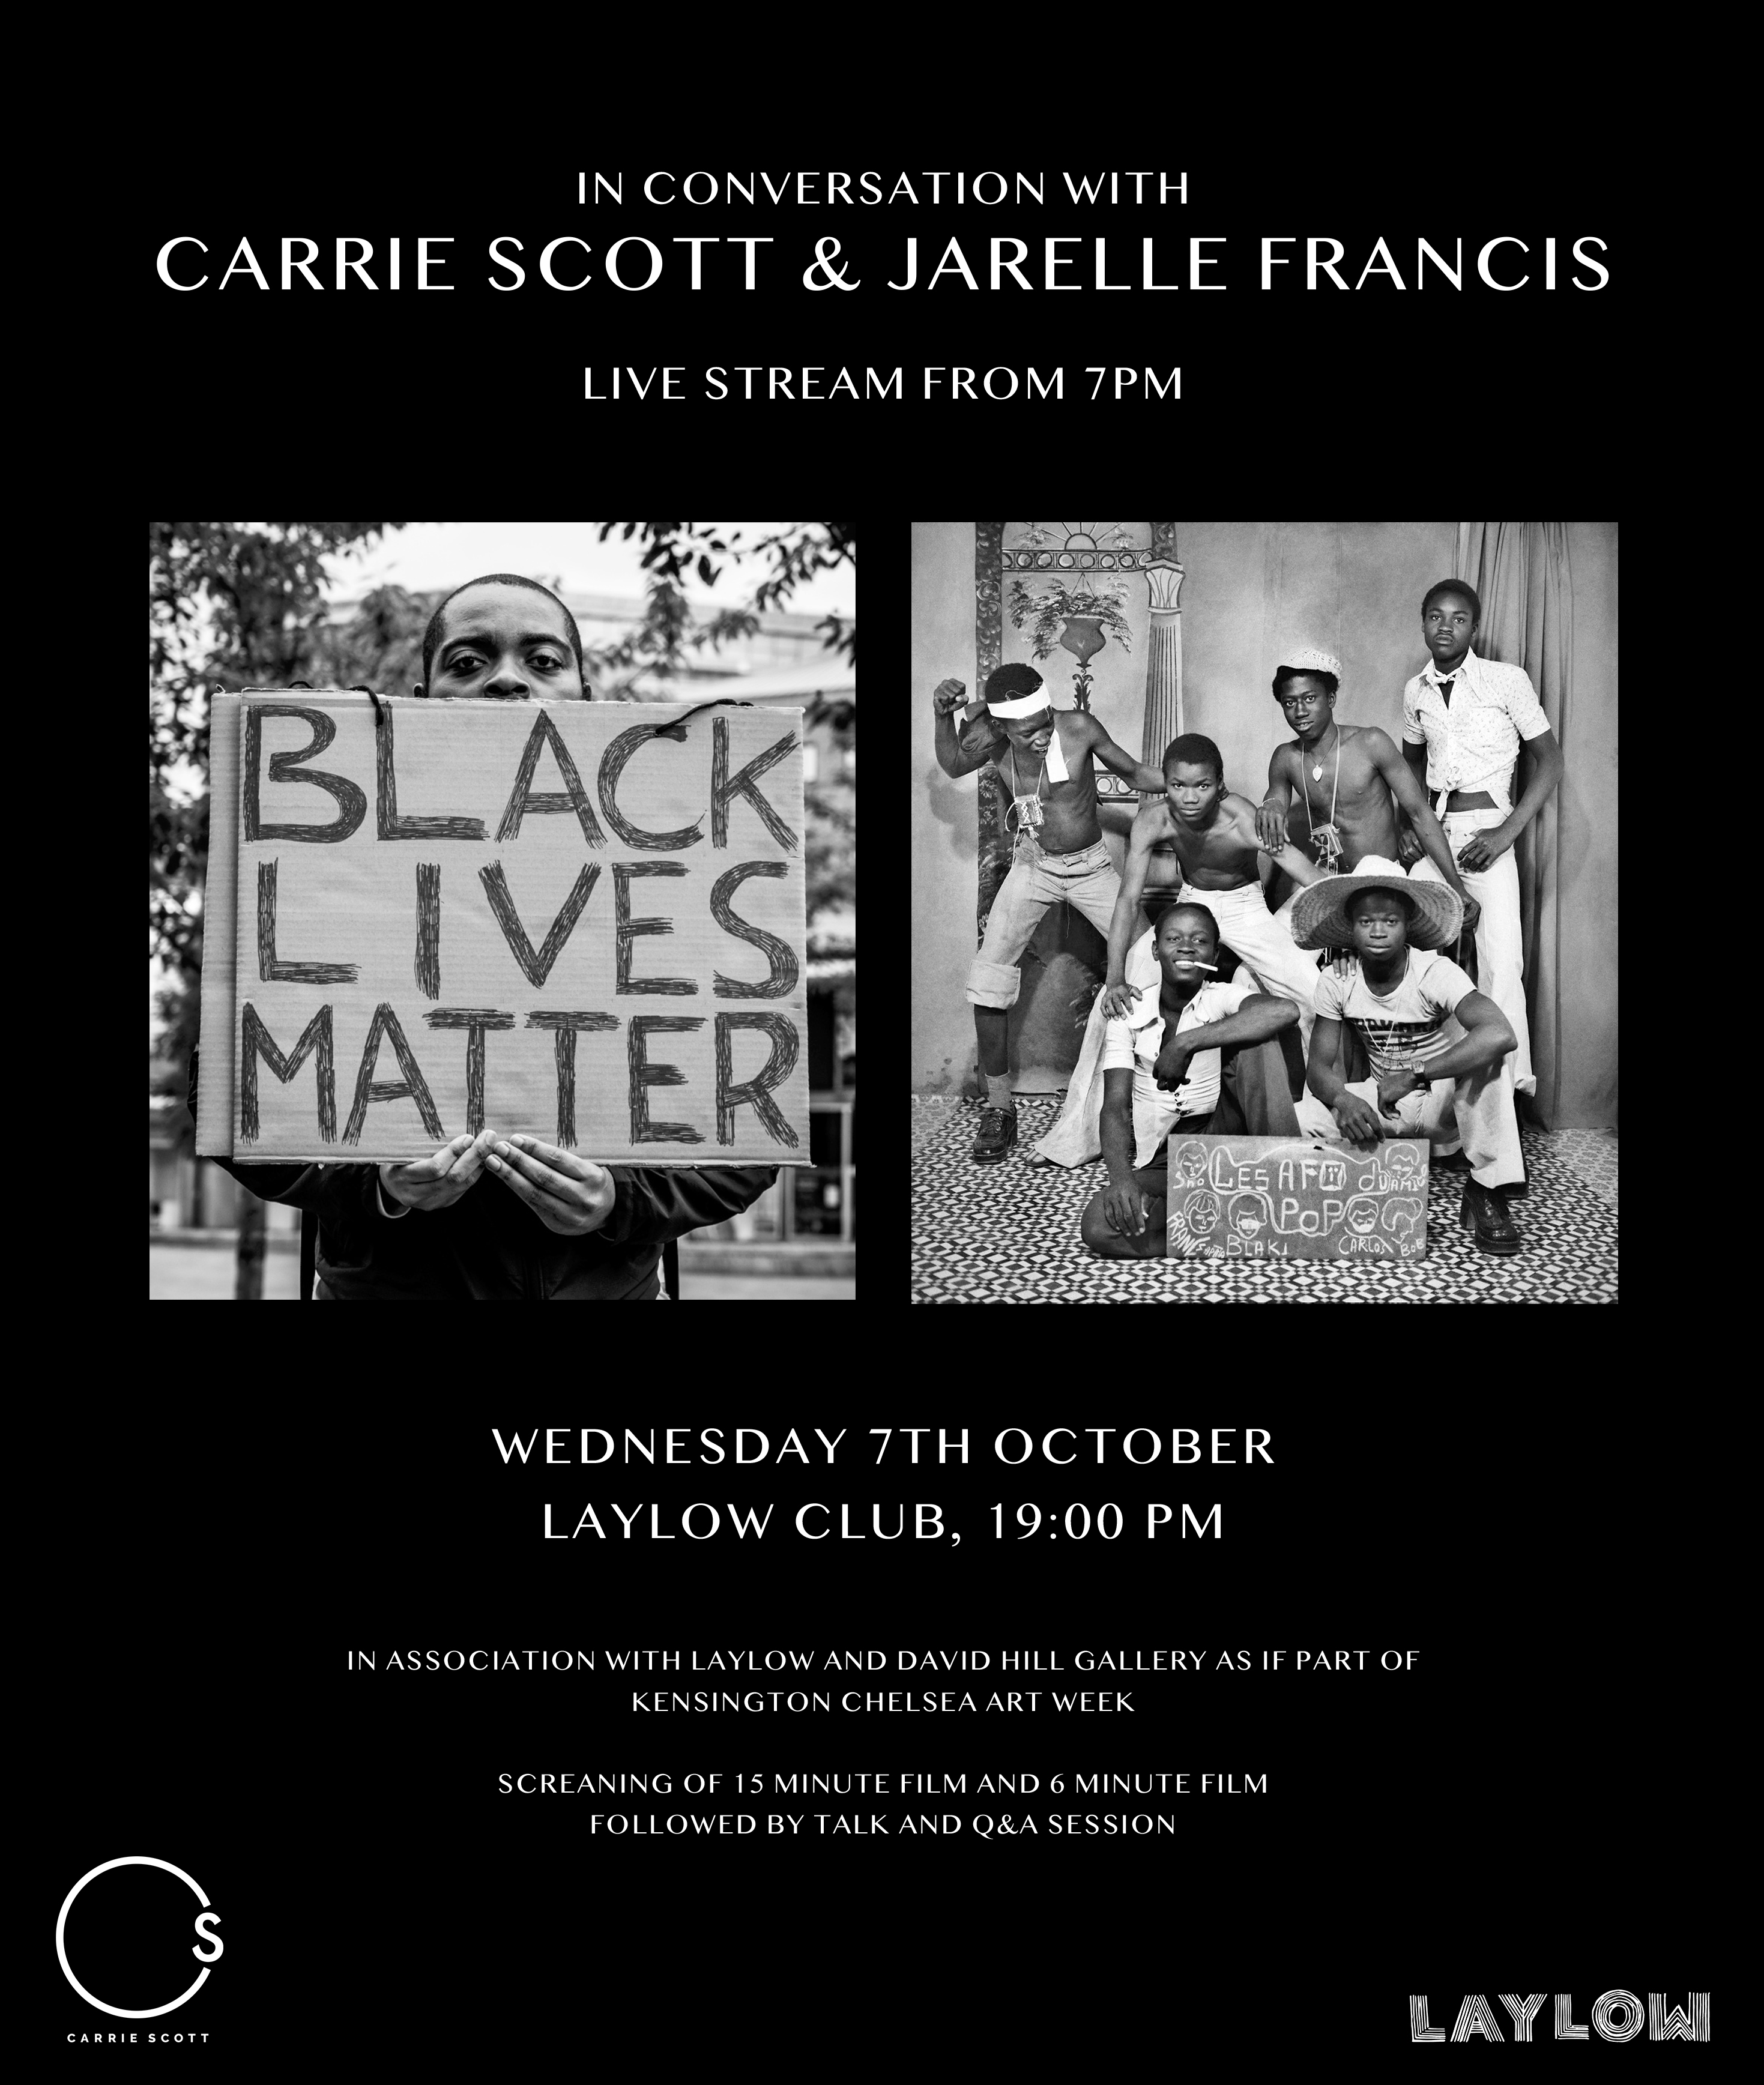 In Coversation With: Carrie Scott & Jarelle Francis